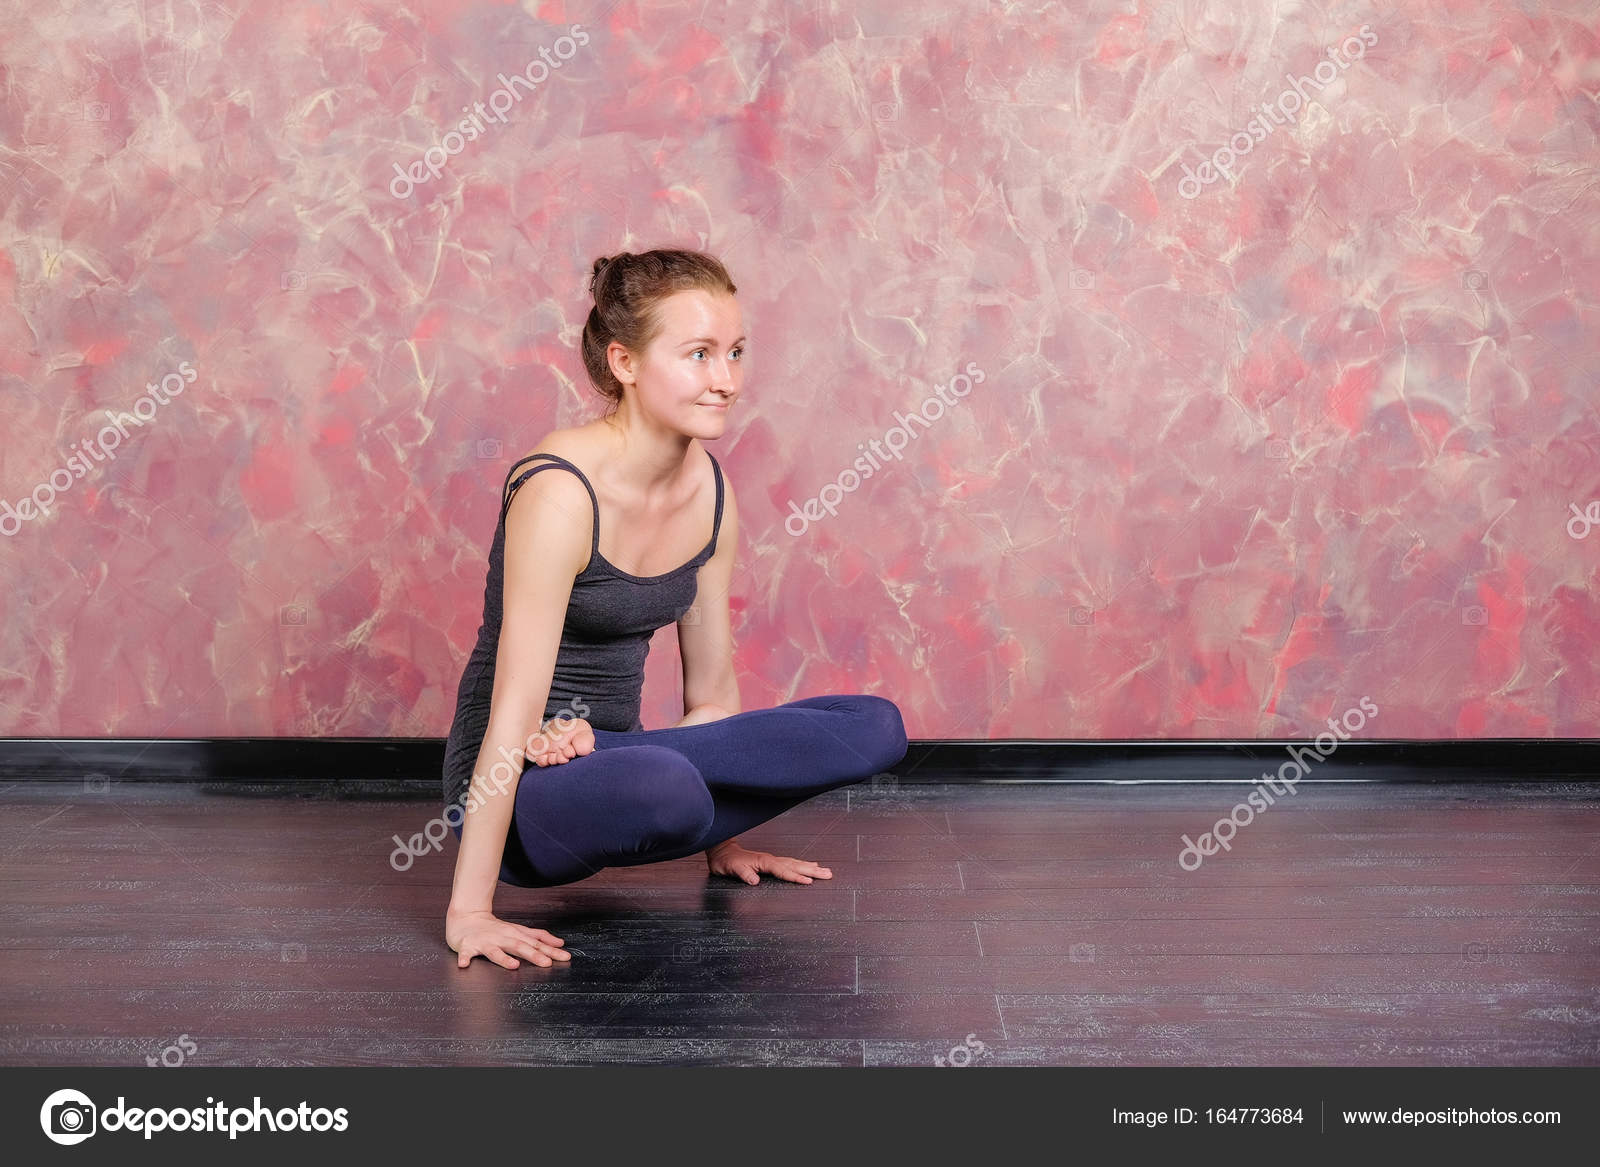 Asana In Yoga Stand On Hands Parshva Bakasana Healthy Lifestyle The Girl Is Practicing Meditation In Yoga Class Relaxation And Stretching Stock Photo C Eve134lin Gmail Com 164773684